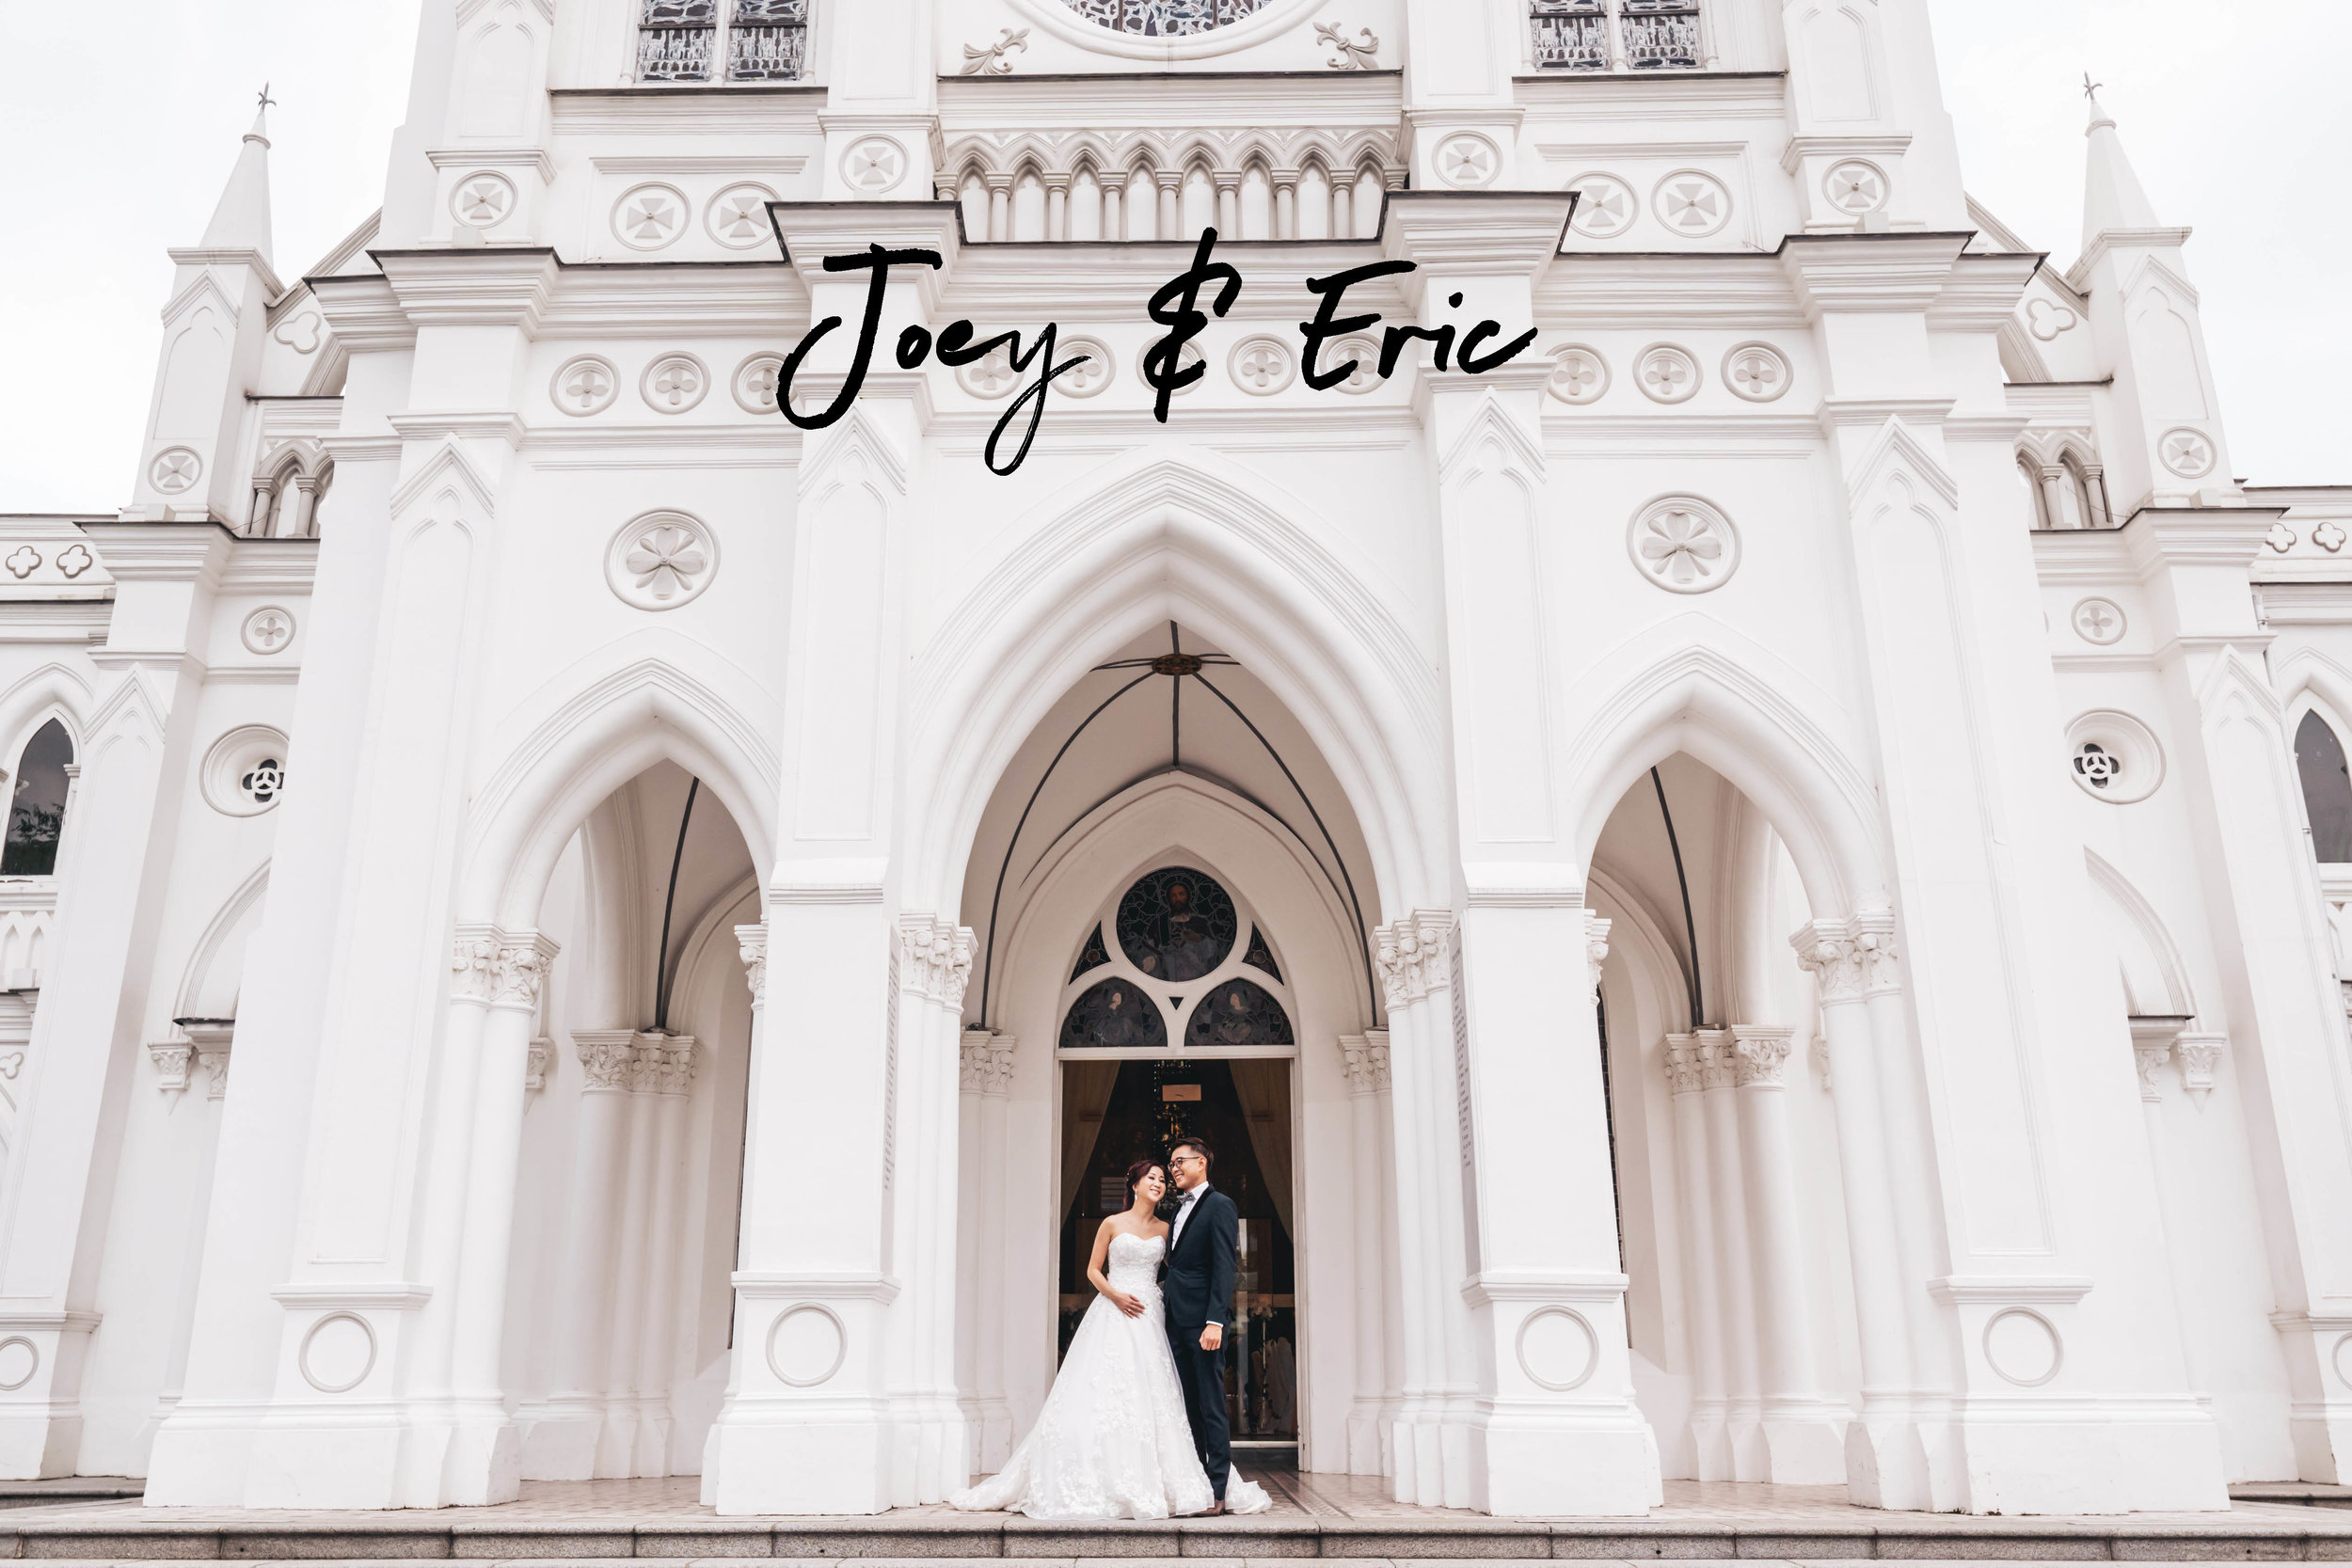 20181104_Joey+and+Eric_Chijmes+(4+of+70)+copy+Cover.jpg